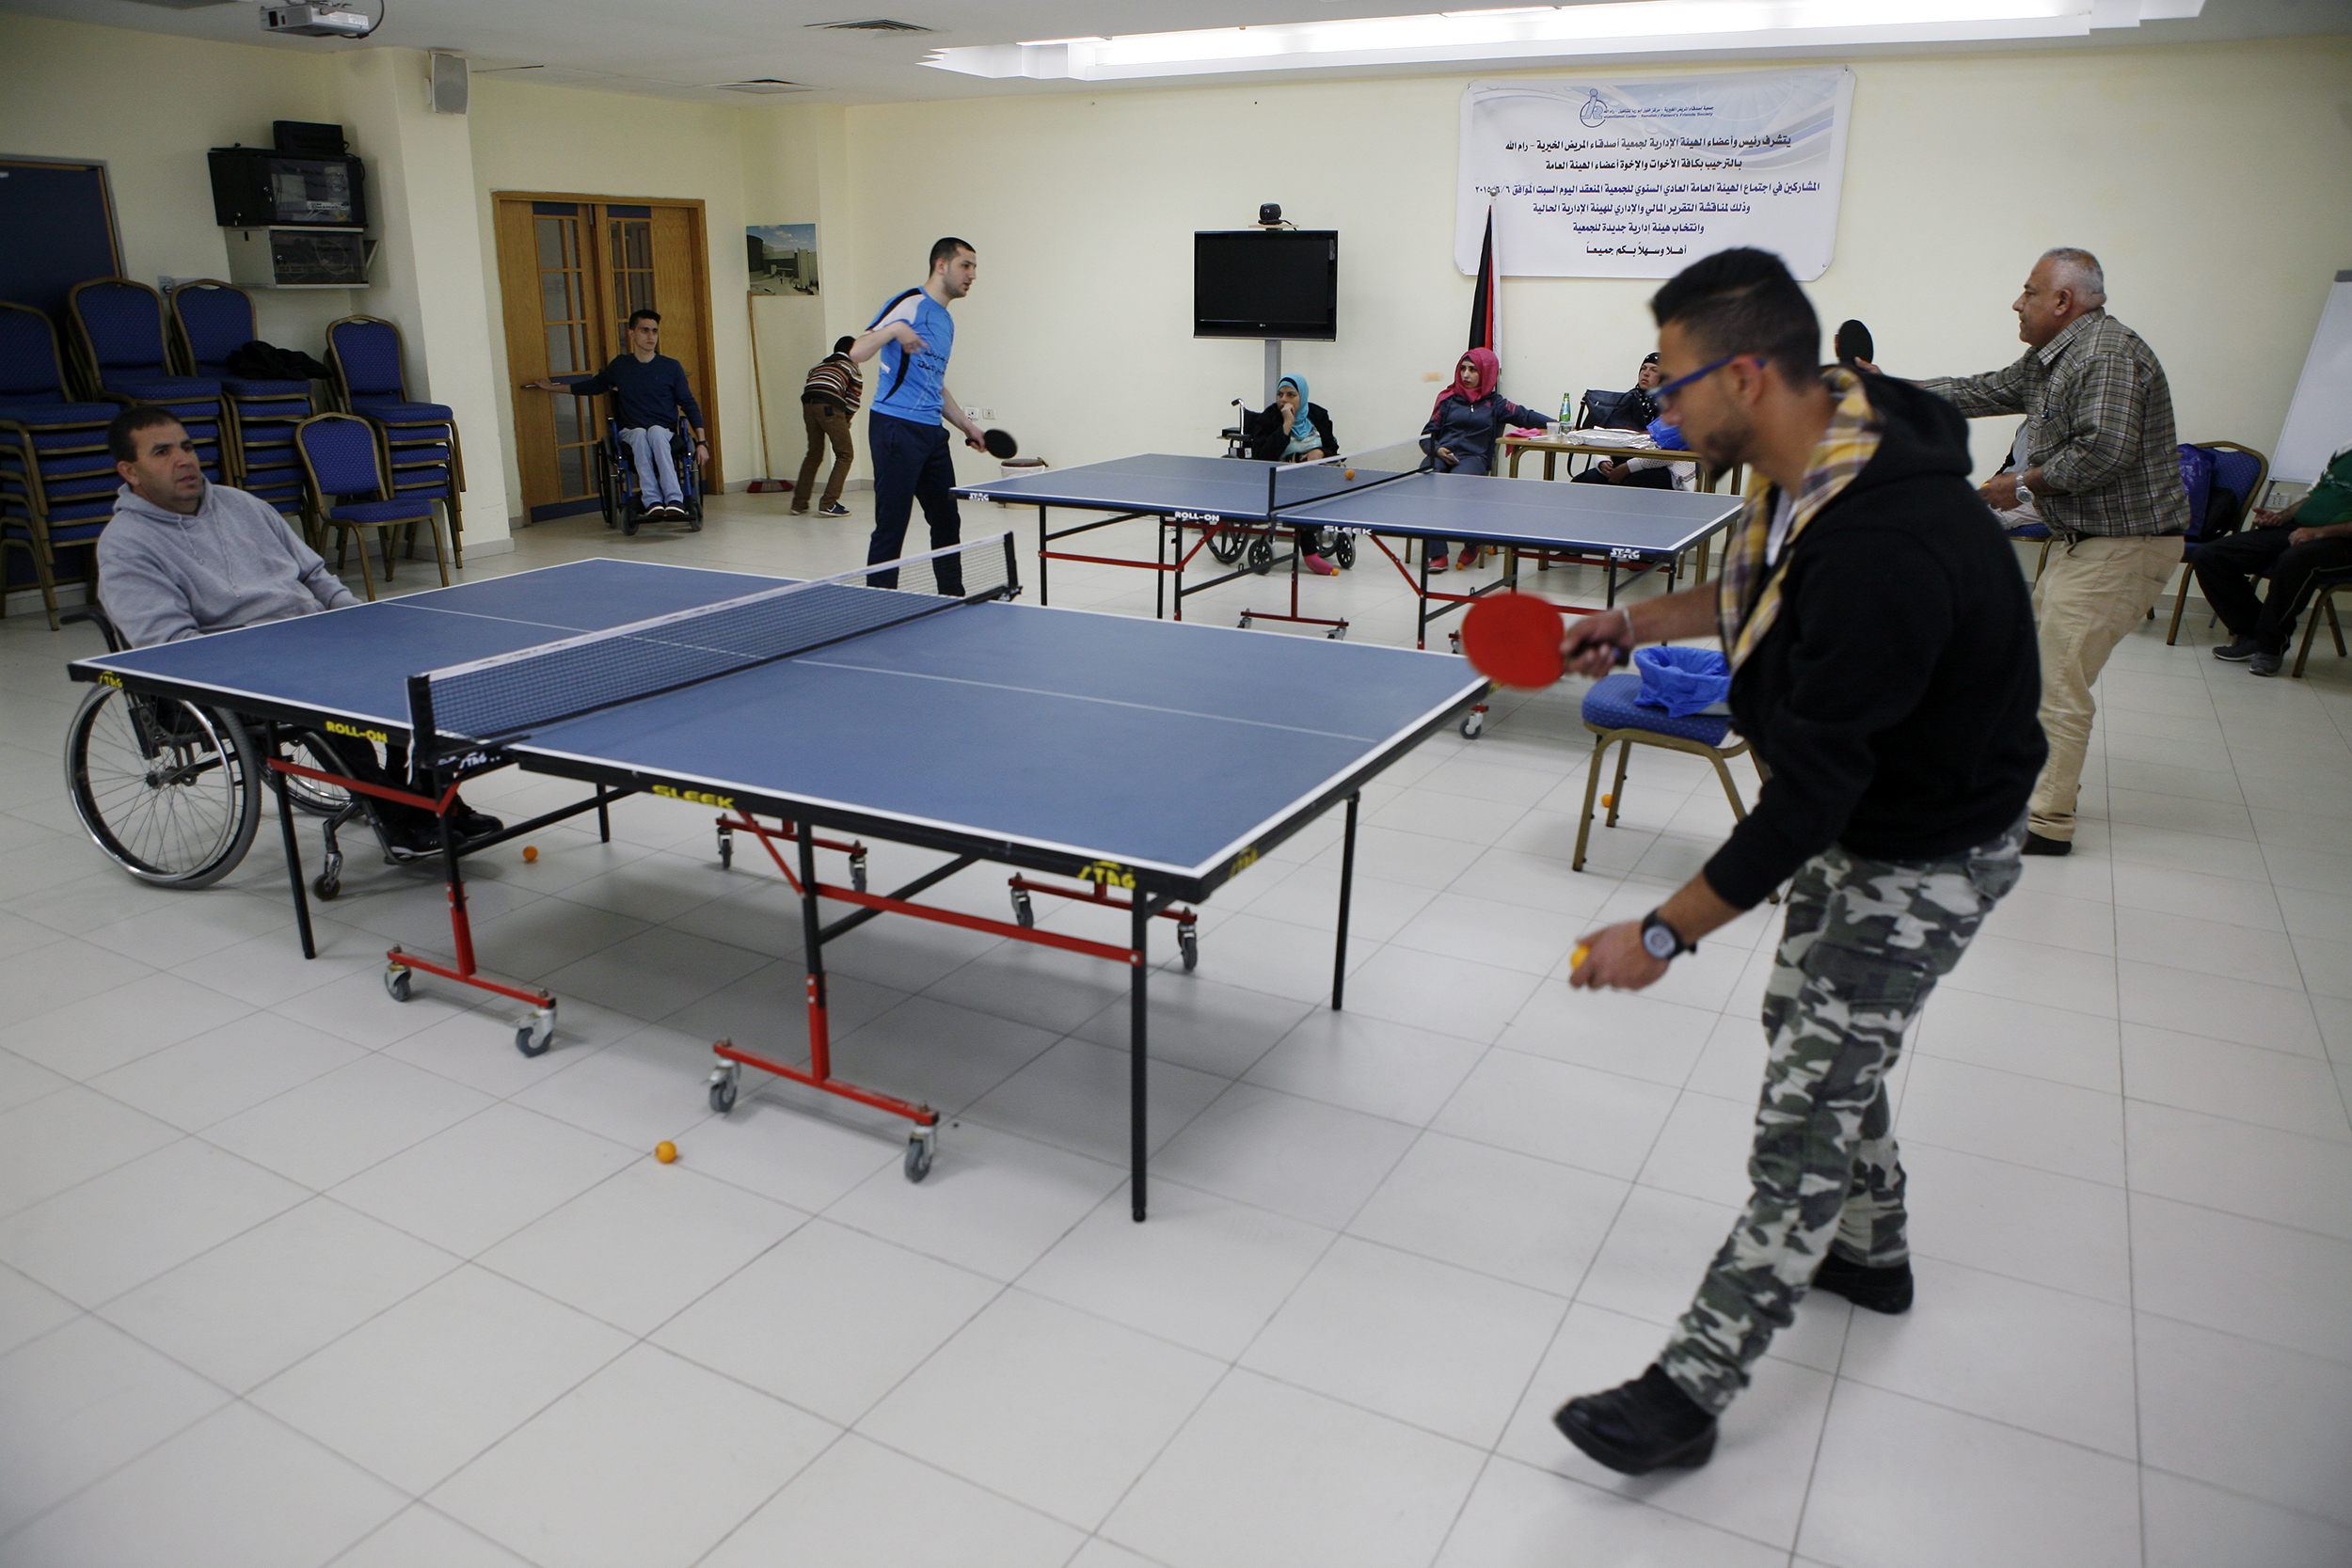 Playing Ping Pong with Disability | Inter Press Service